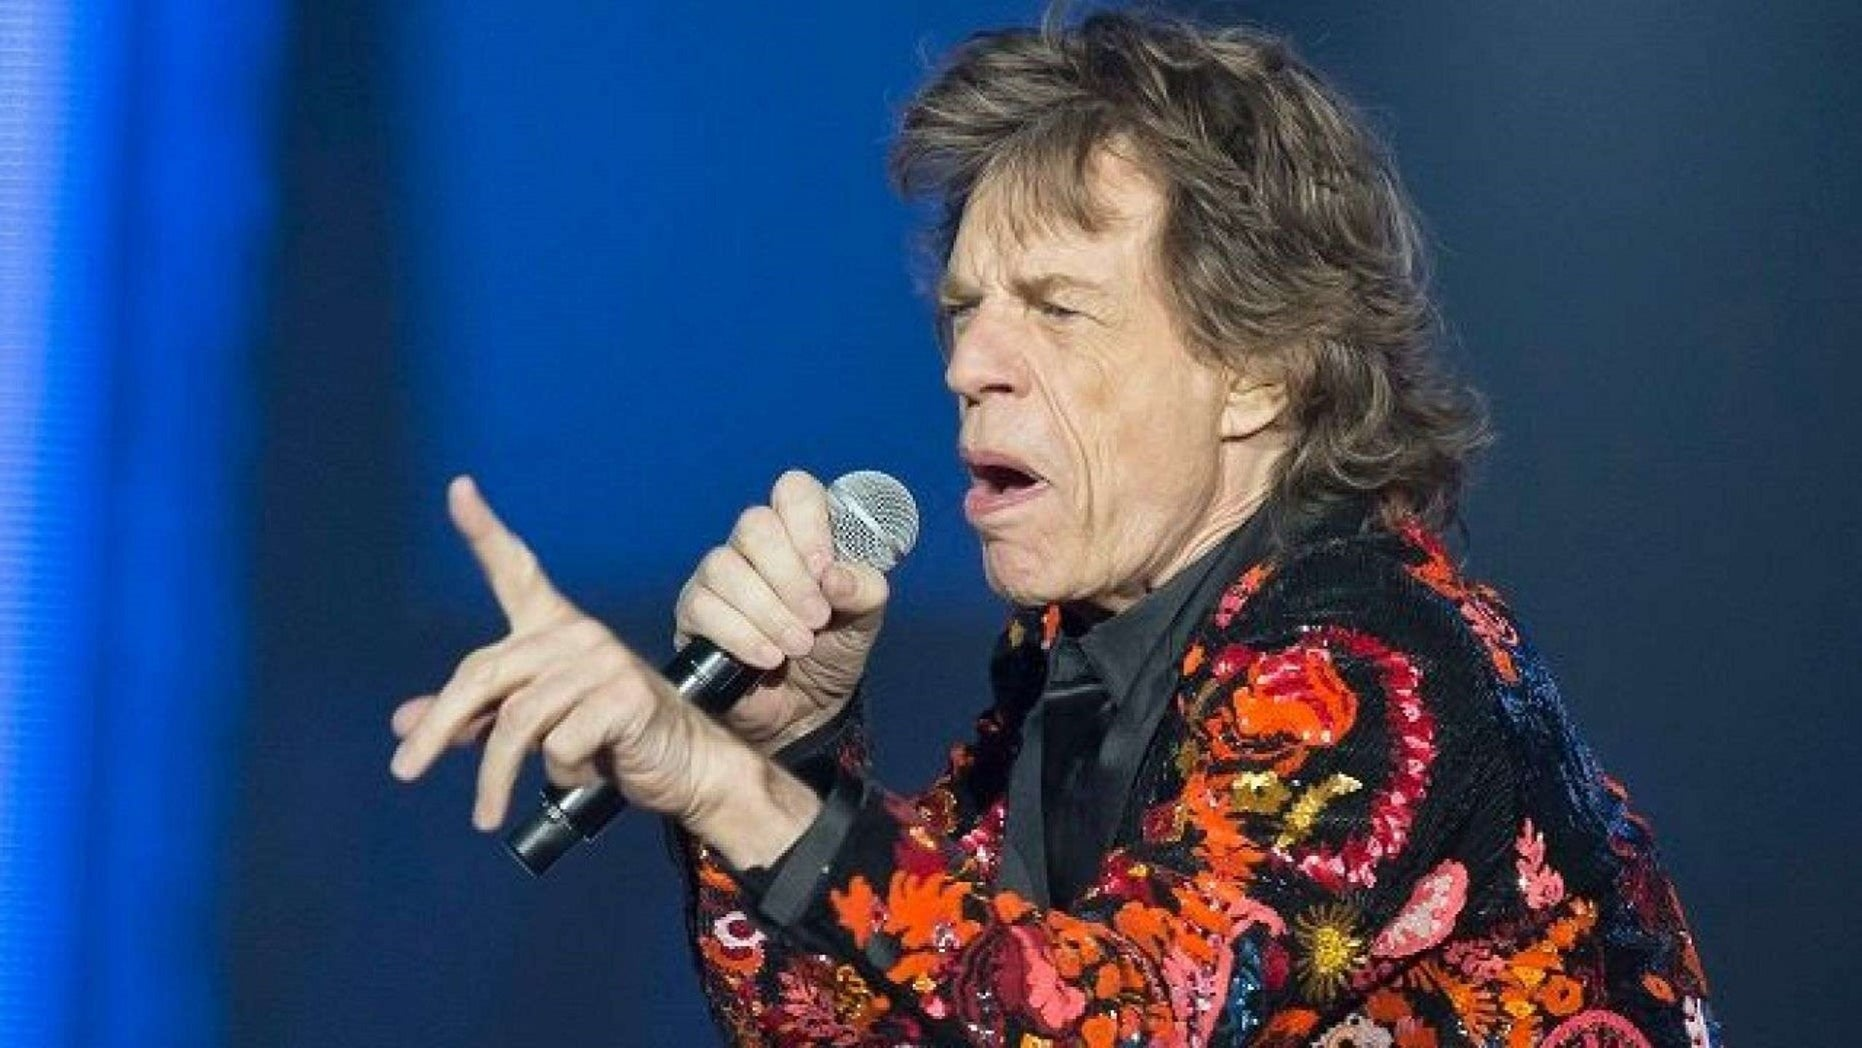 The Rolling Stones announced Saturday that they are postponing their upcoming tour dates in the U.S. and Canada so lead singer Mick Jagger can receive medical treatment.